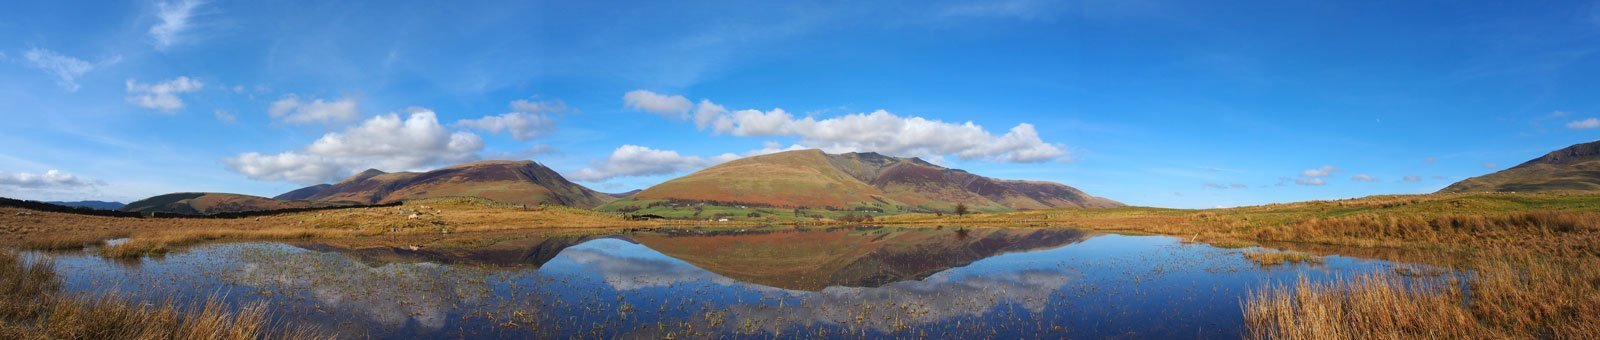 Tewet Tarn looking over to Skiddaw and Blencathra